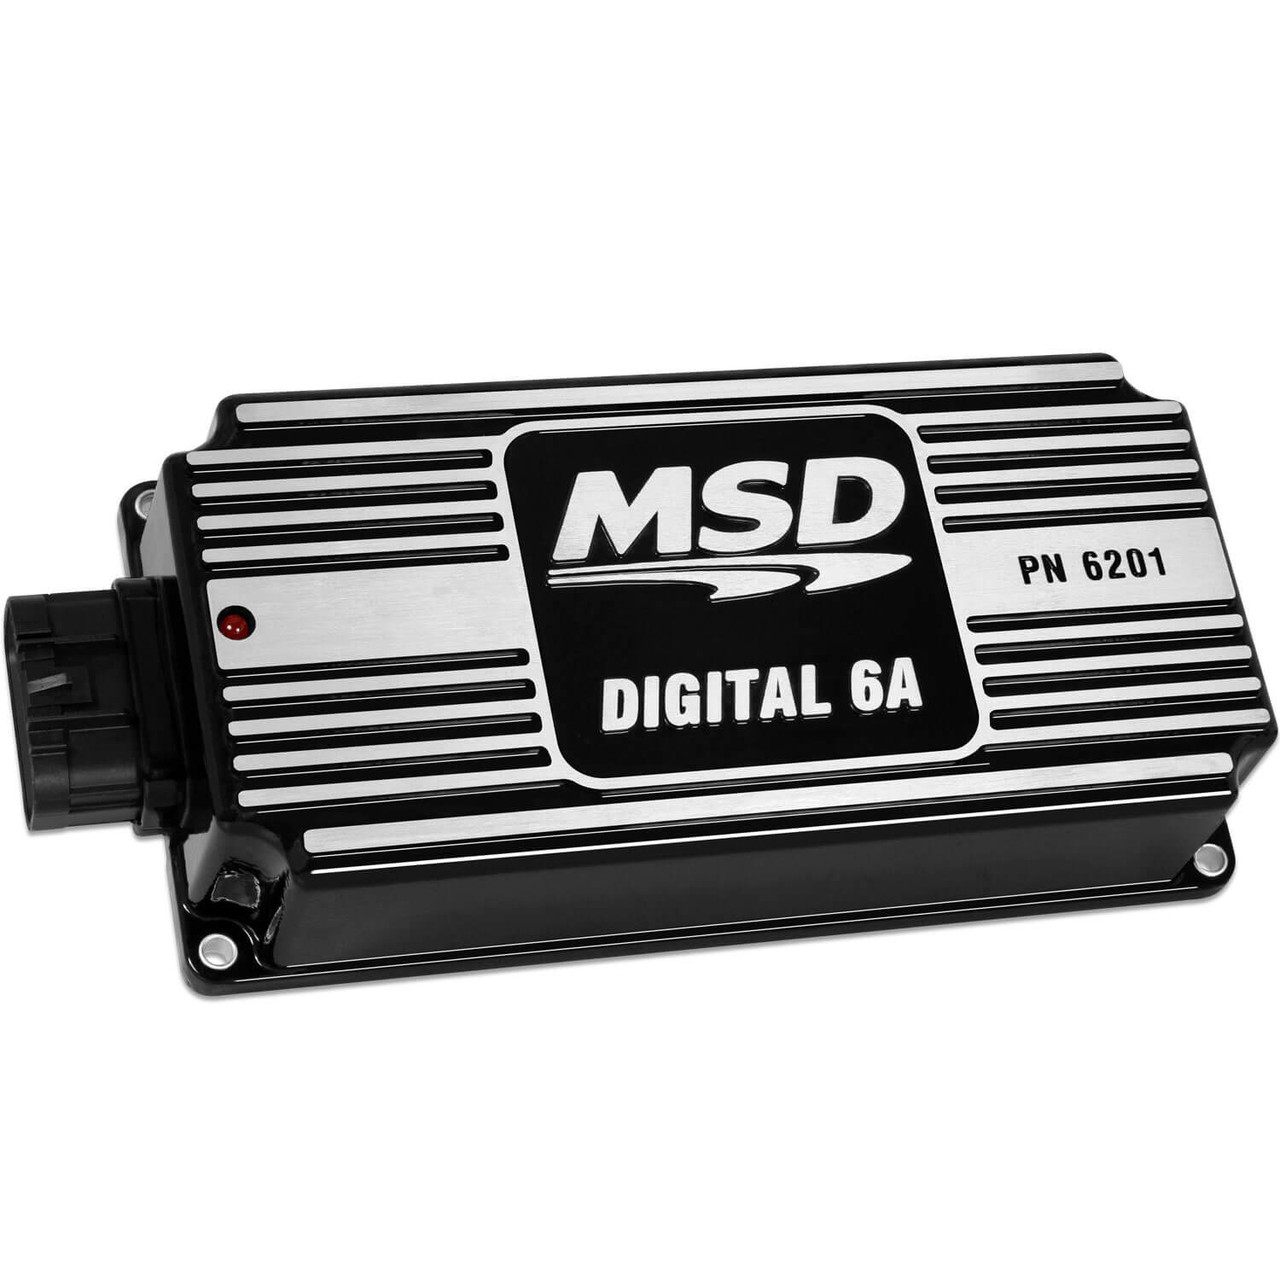 MSD62013, Ignition Box, Digital 6A, Digital, CD Ignition, Multi-Spark, 45000V, Black, Each